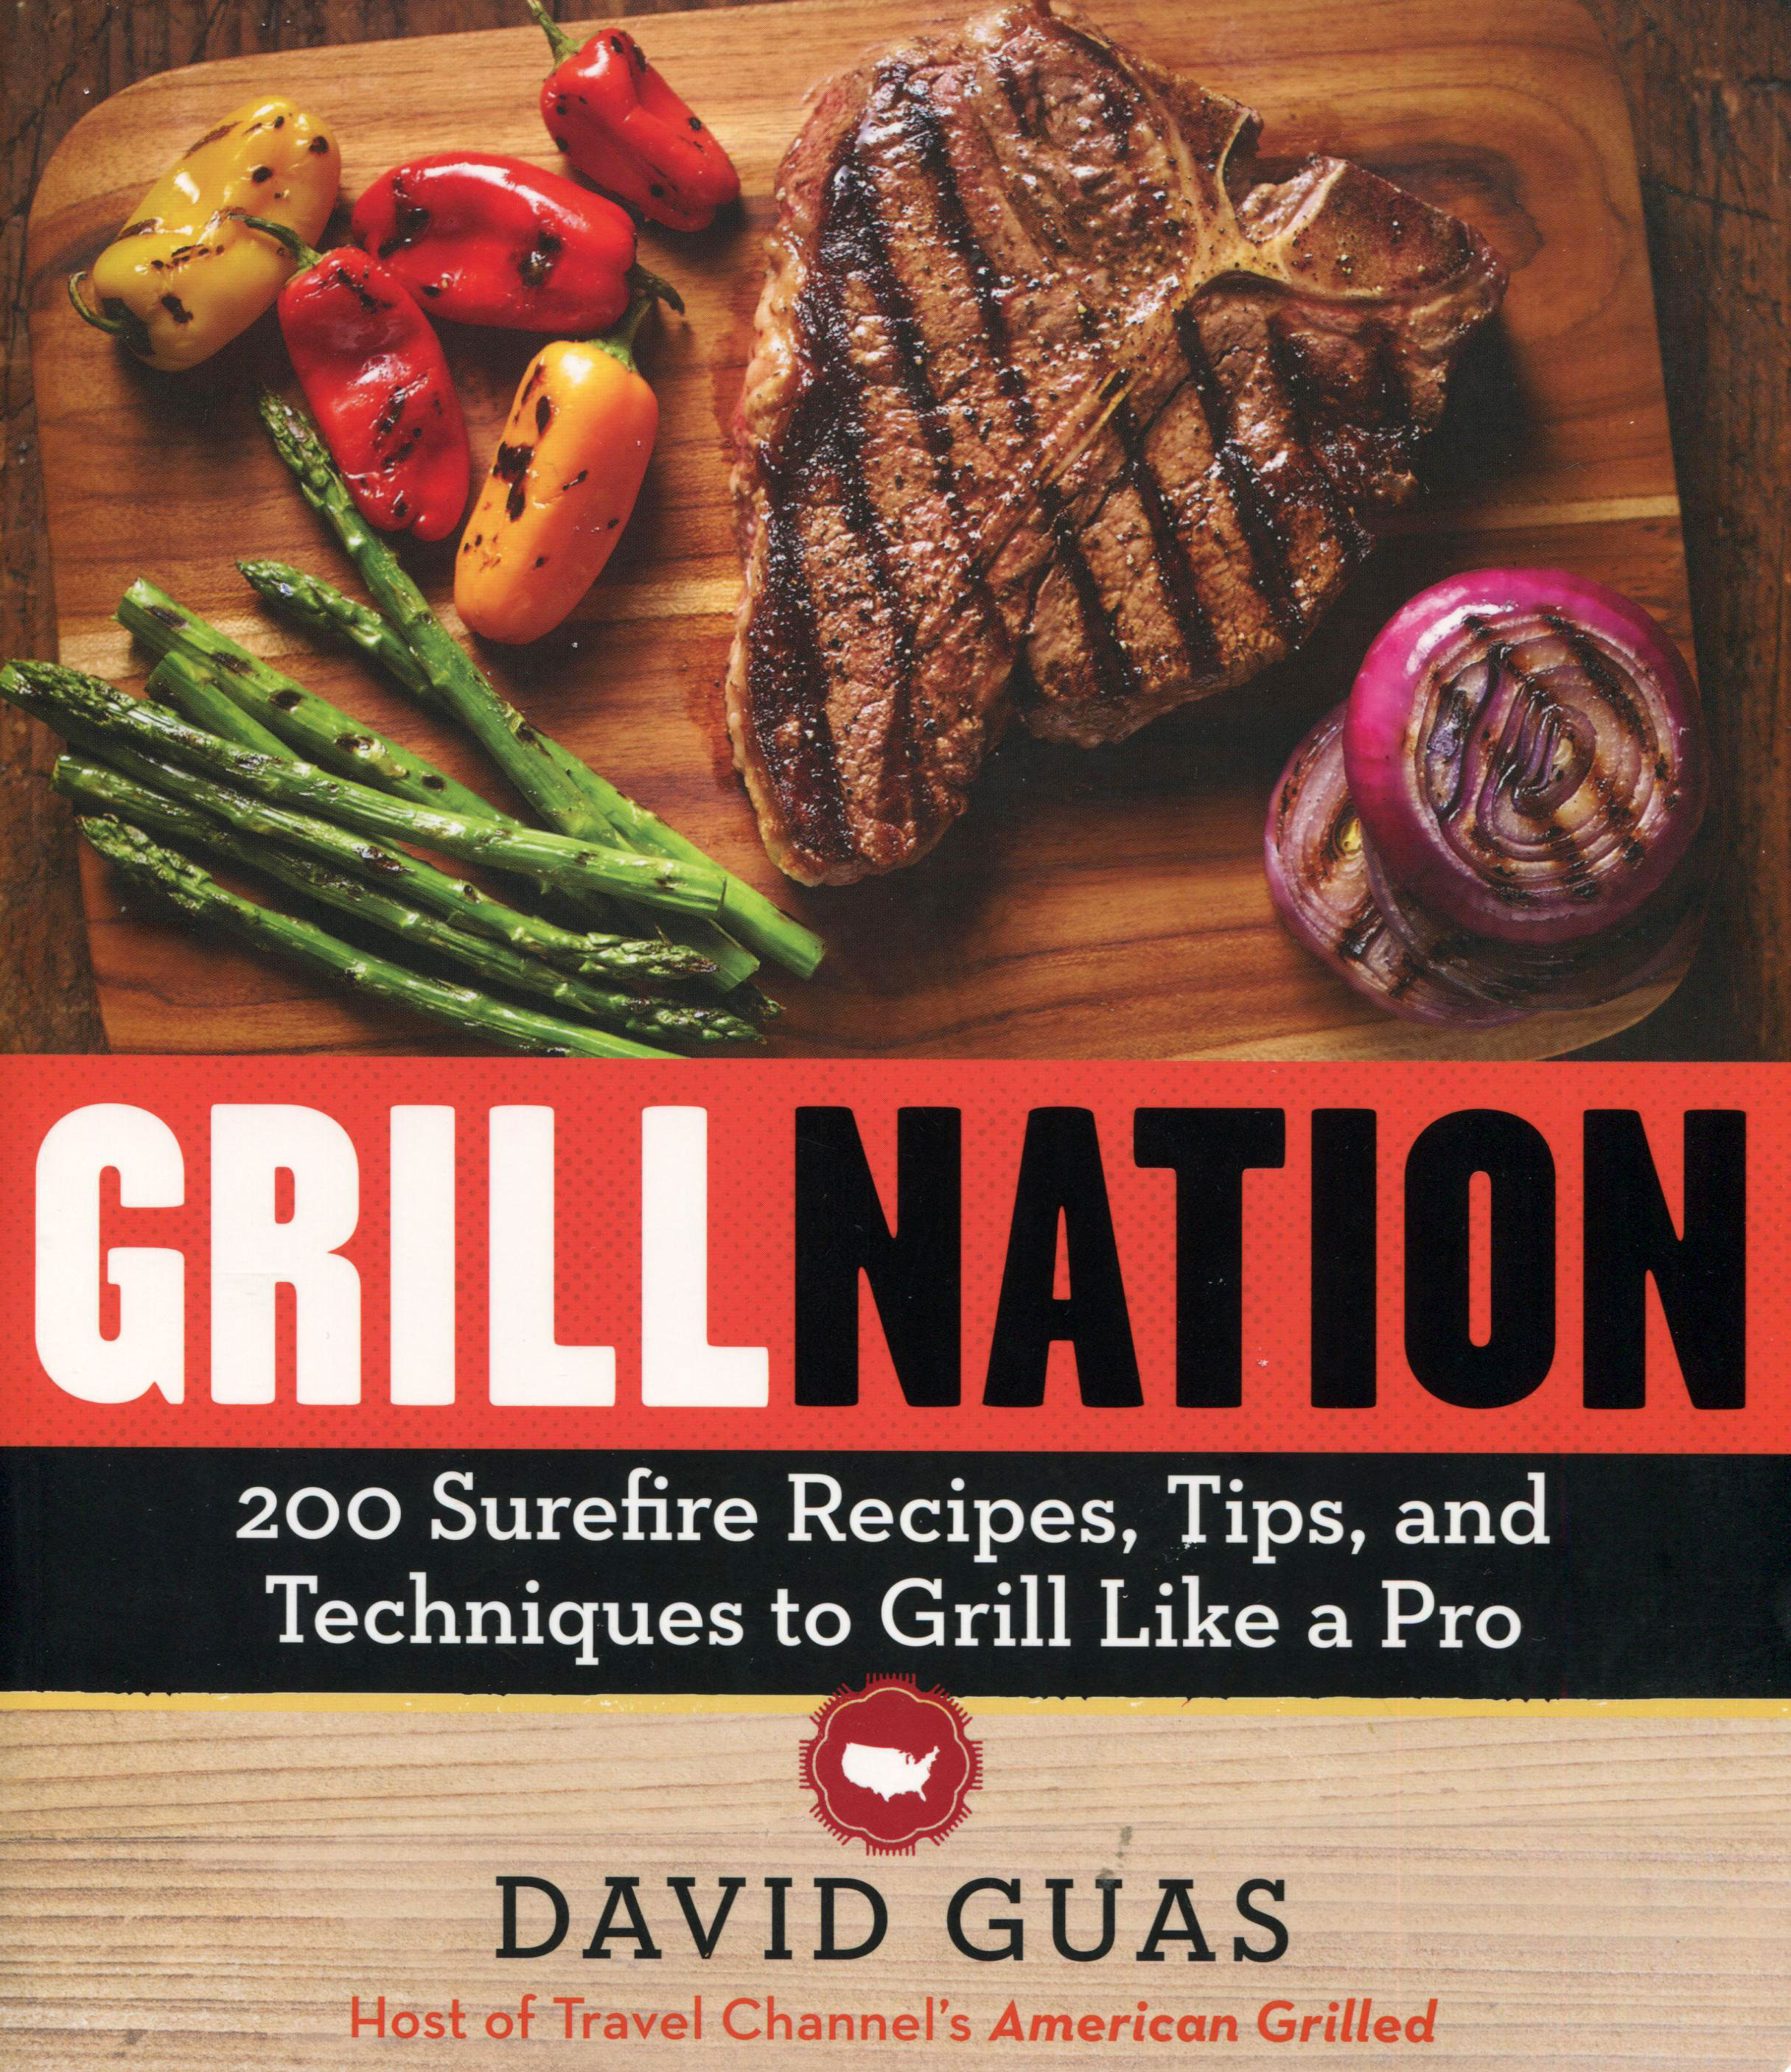 A Cookbook Review for You While We Are in Yellowstone: Grill Nation